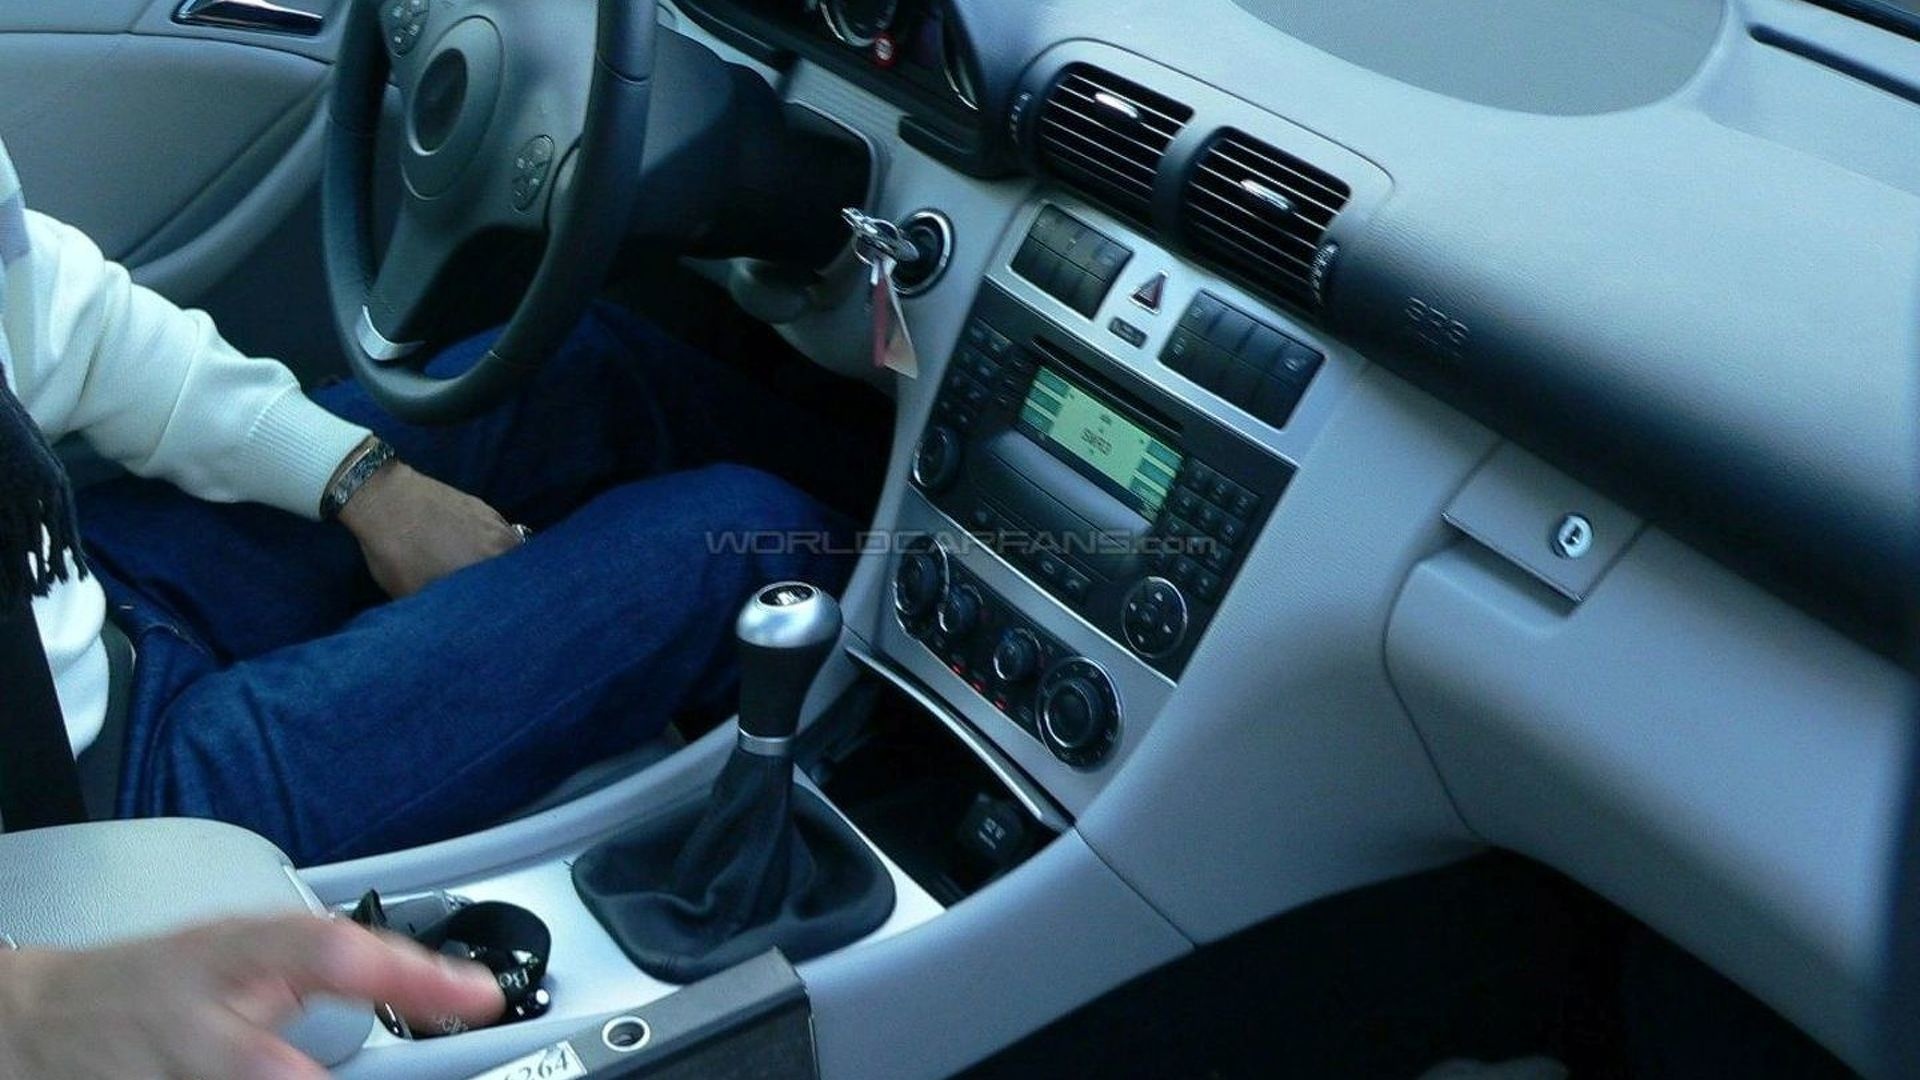 Mercedes C-Class Sport Coupe Spied with Redesigned Interior